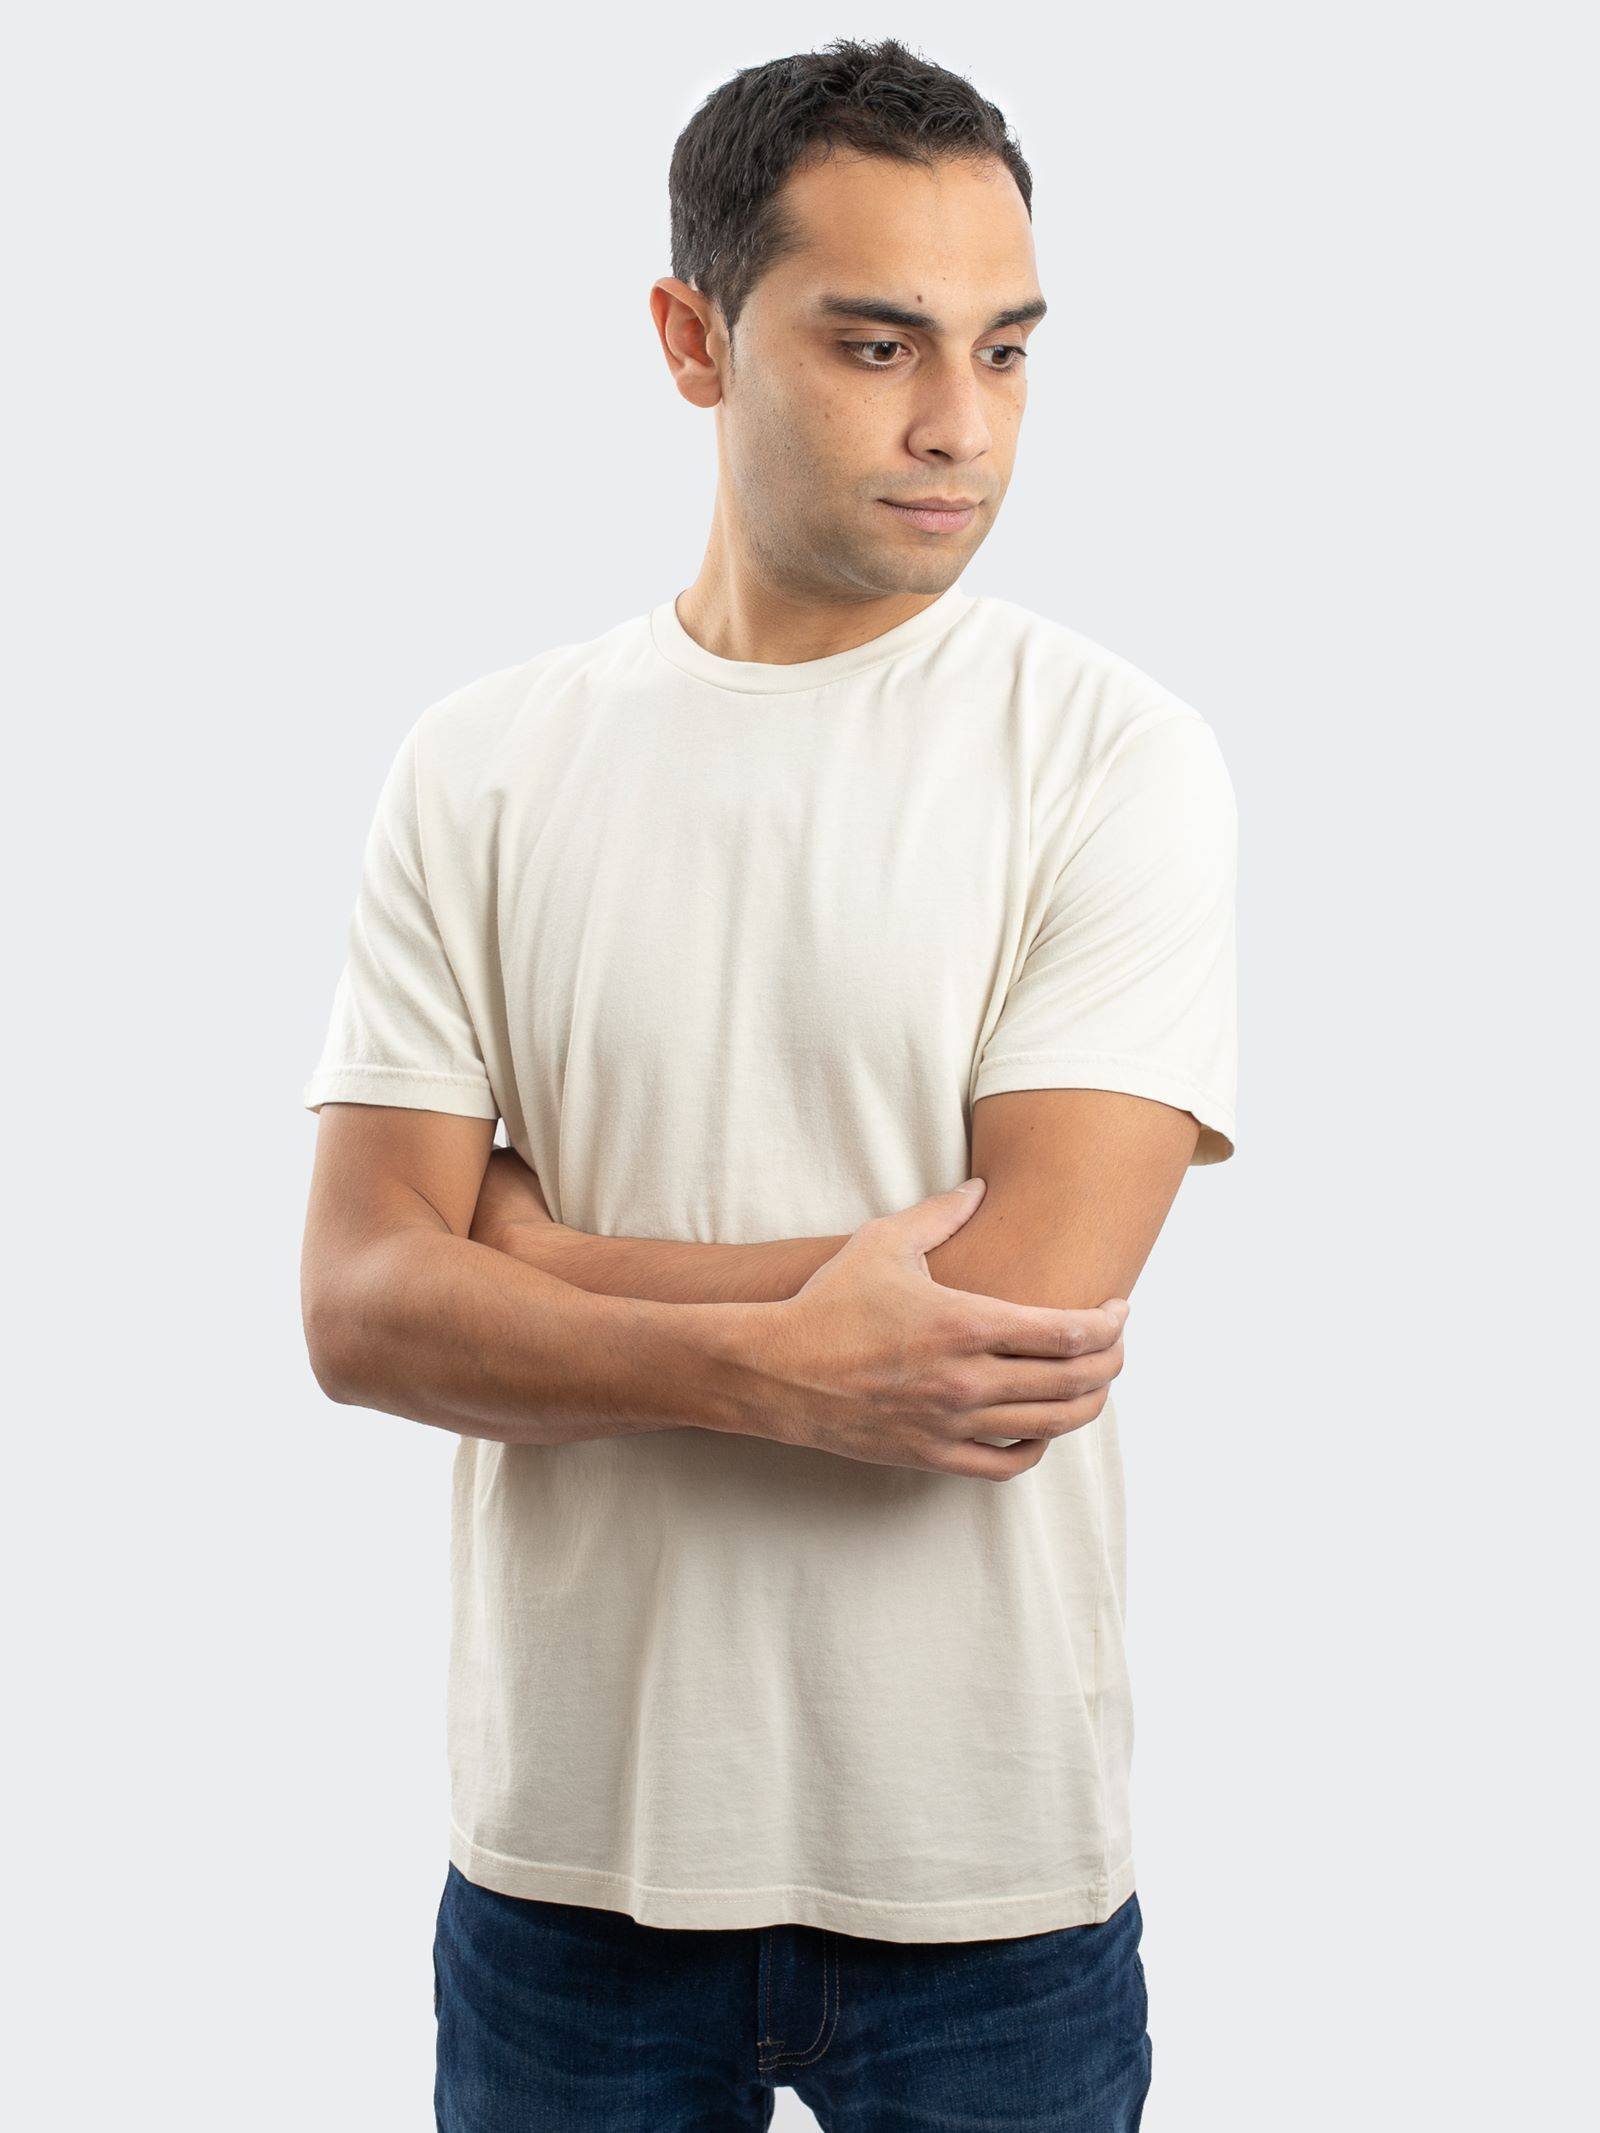 Colorful Standard Men's Classic Organic T-Shirt In Ivory White  - Neutrals - Size: Large